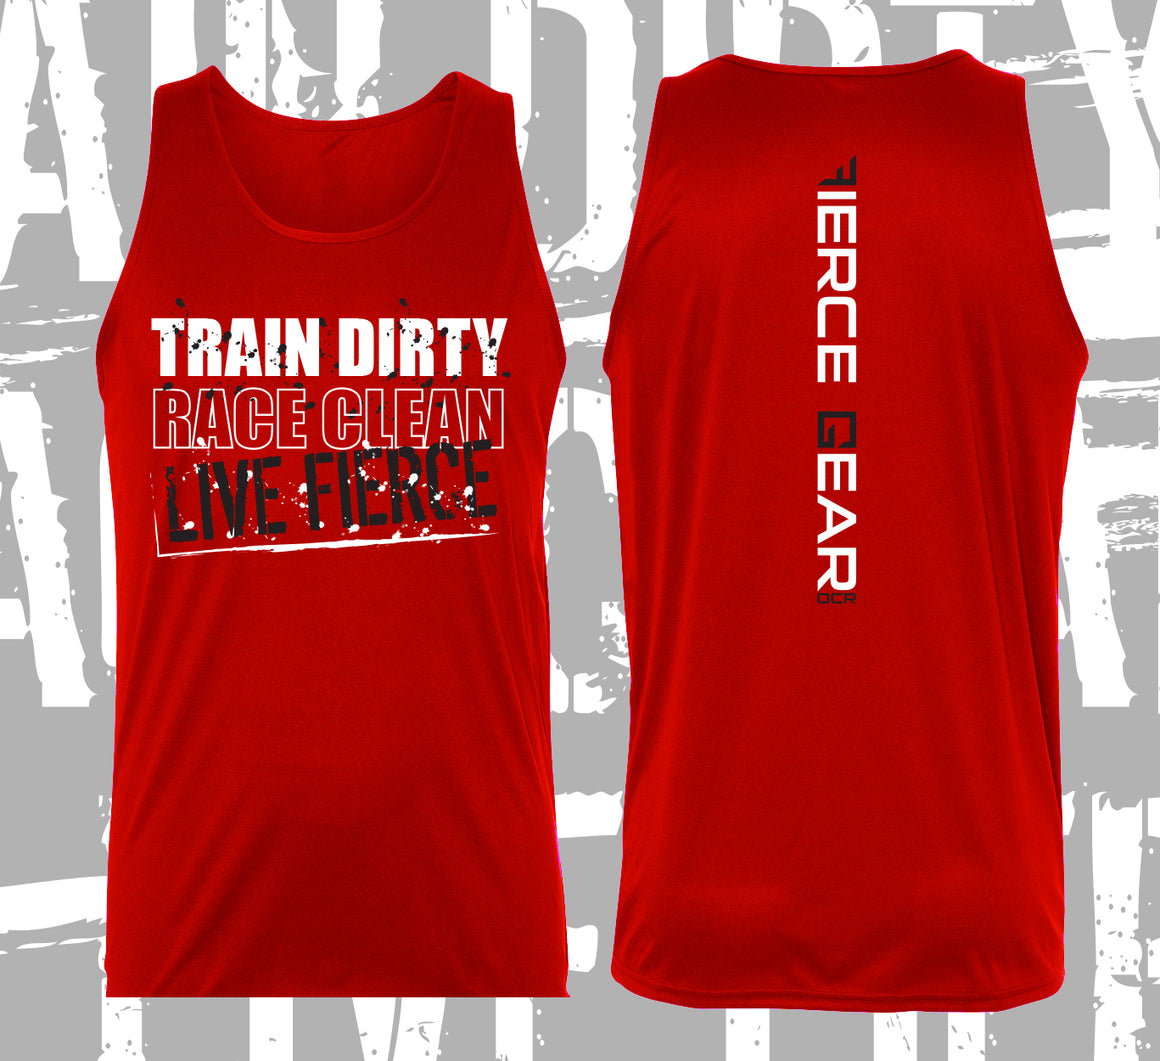 Train DIRTY, Race CLEAN Performance Tank - Men's (PRE-ORDER UNTIL SEP 2)